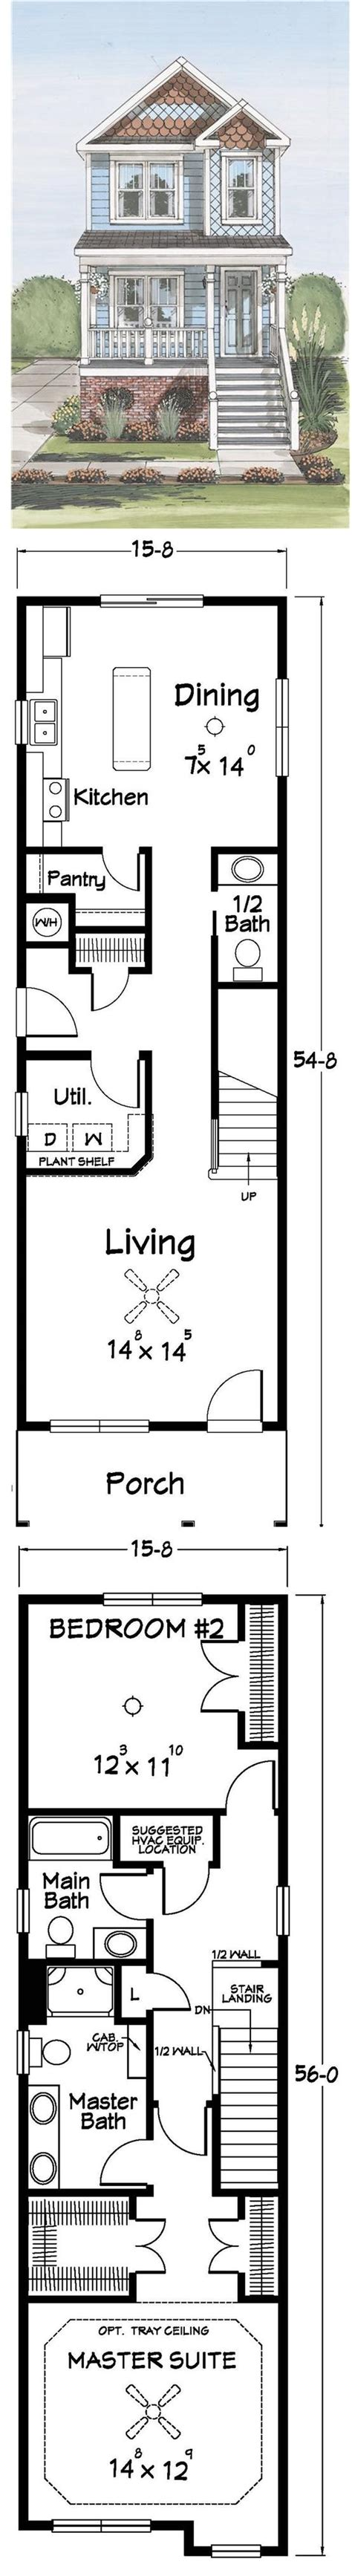 narrow small house plans this charming narrow lot friendly garden city plan provied large house square